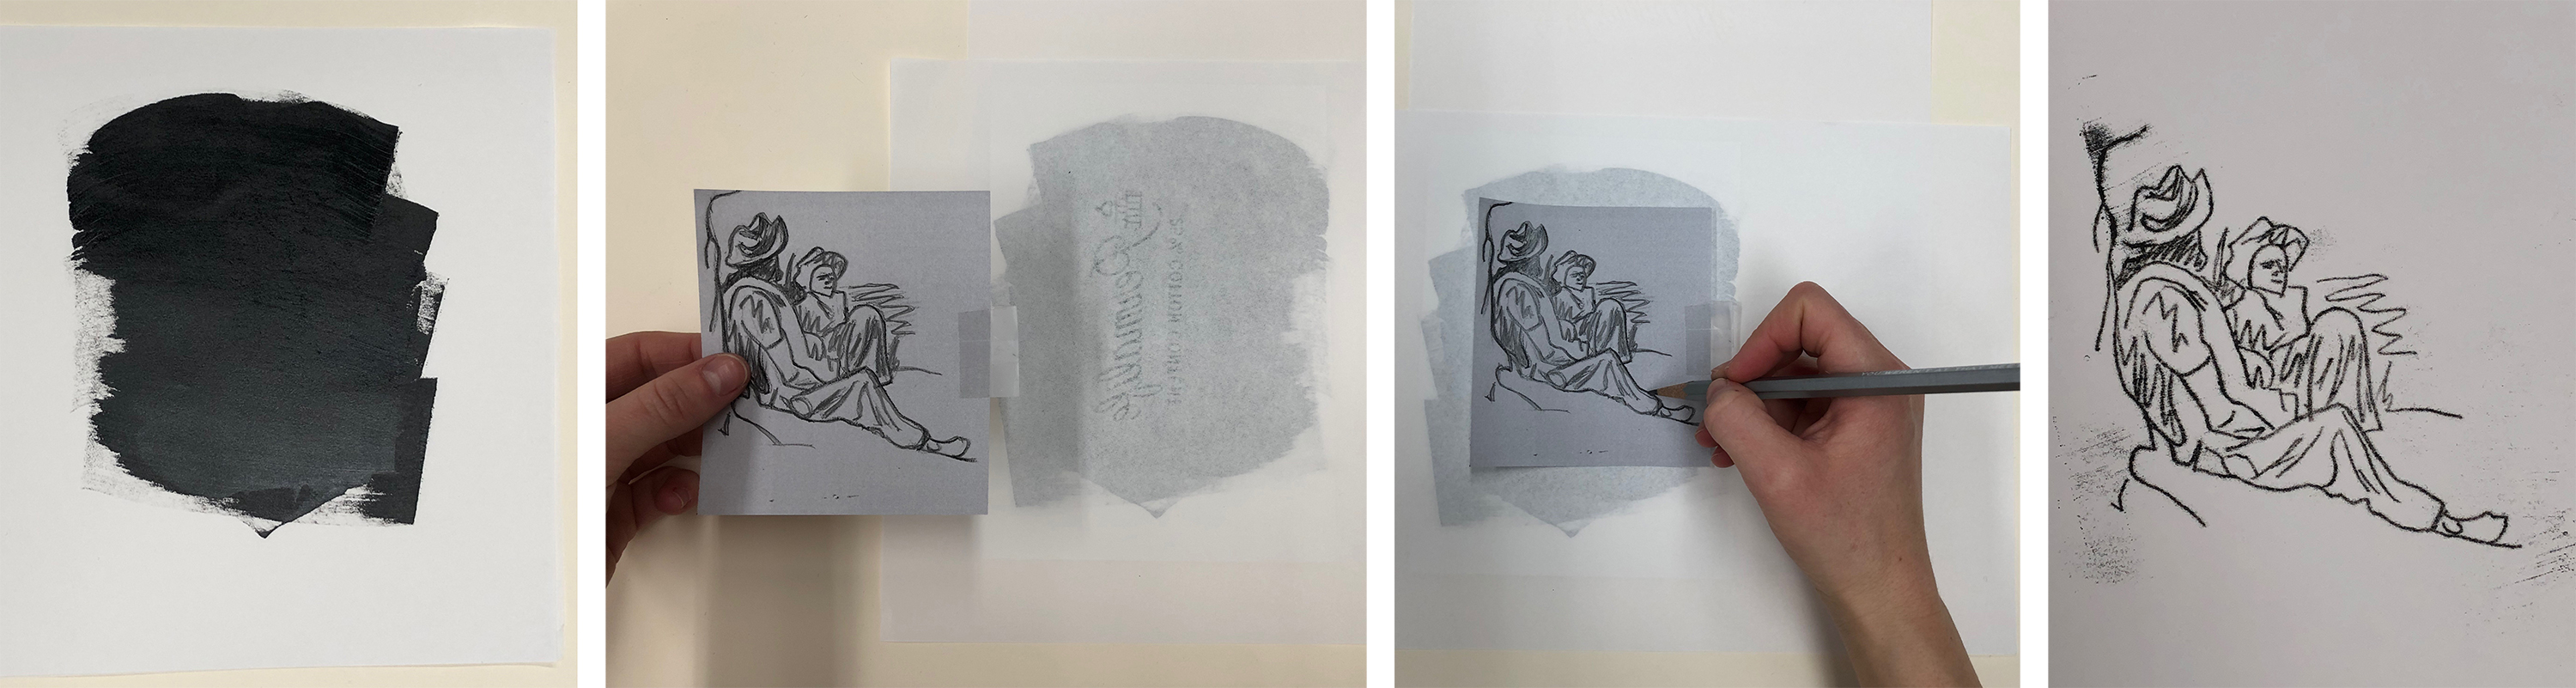 From left: Ink applied to paper matrix; Inked paper flipped onto clean paper; Image traced through ink; Result is not a mirror image of the original